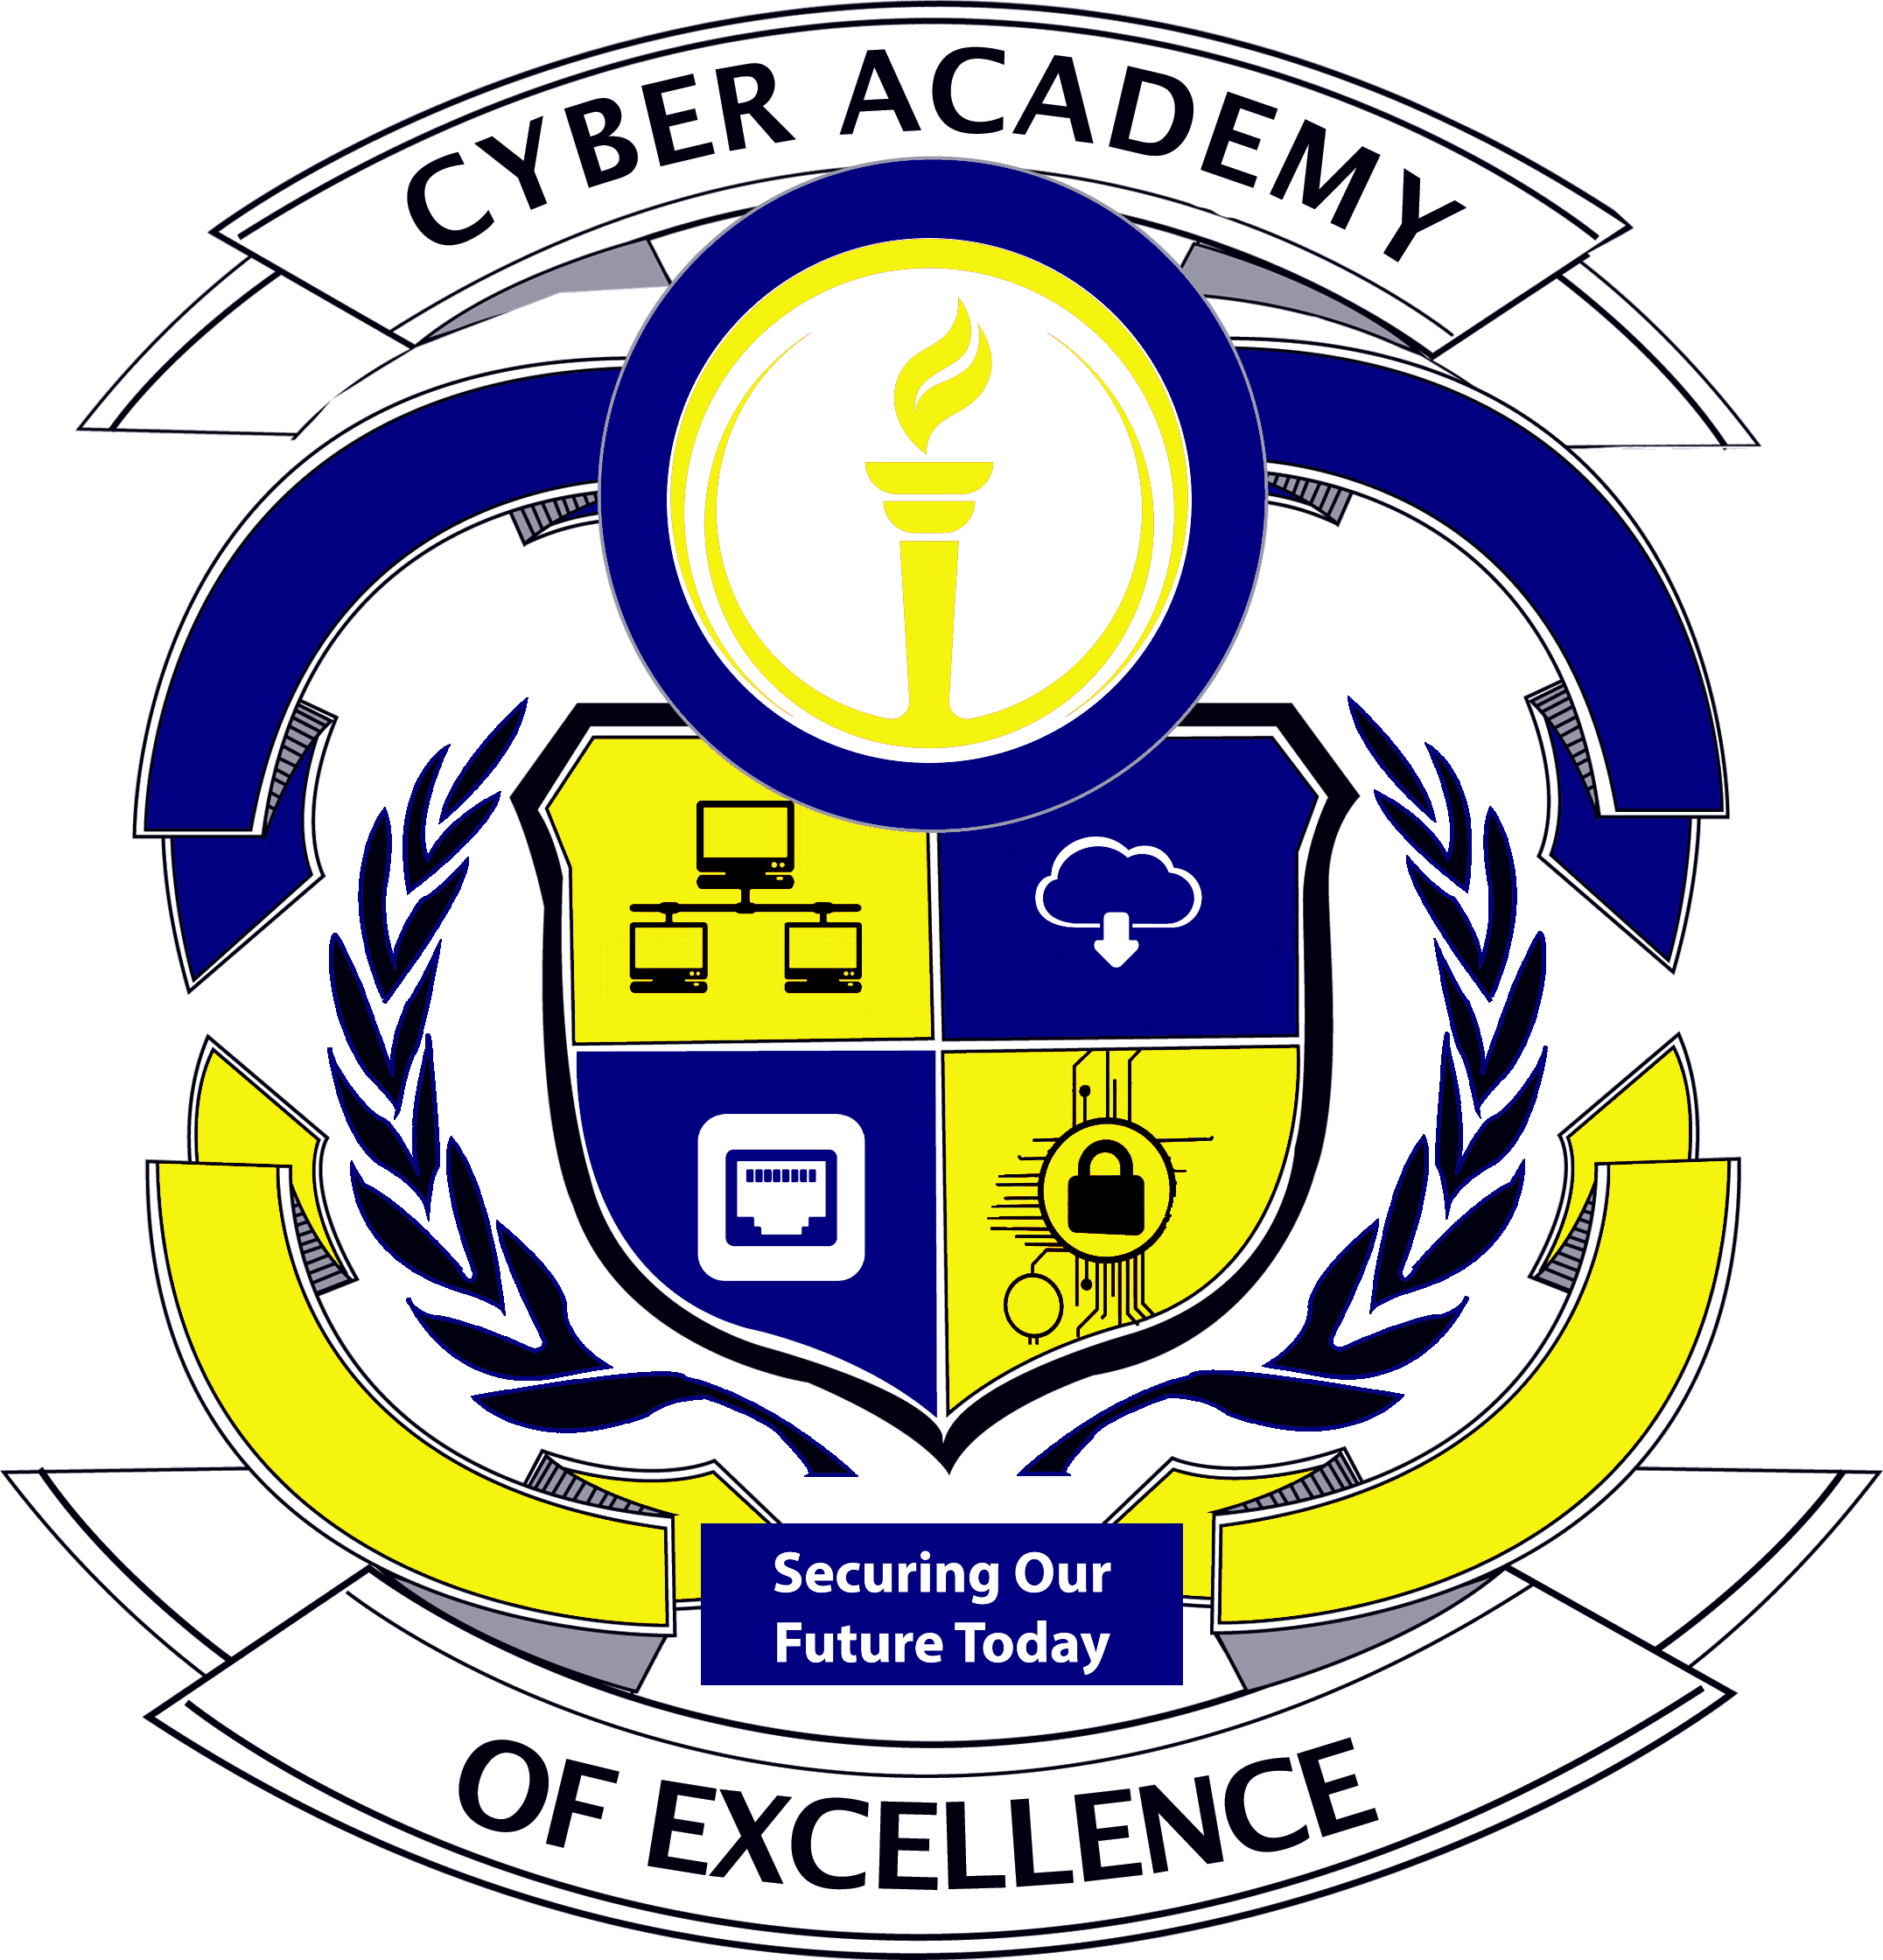 Cyber Academy of Excellence